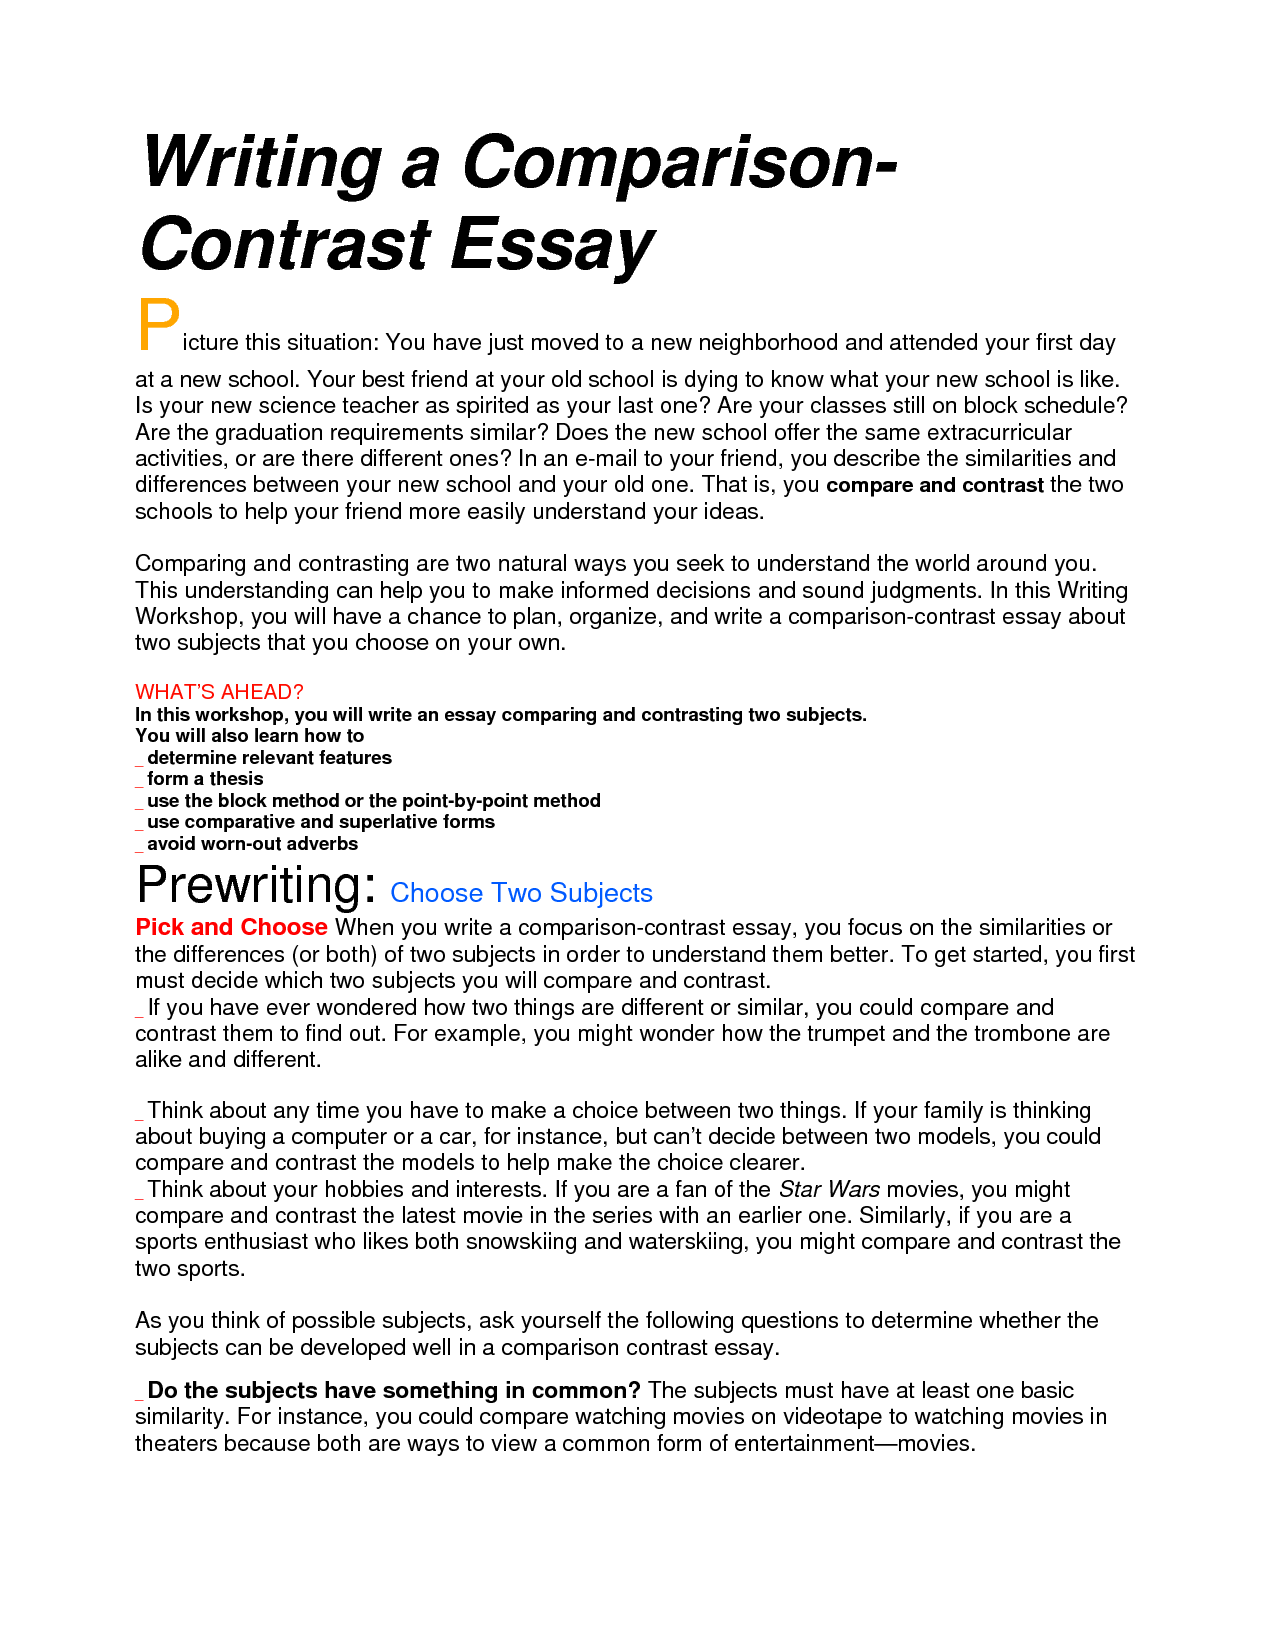 Image Result For Examples Of Compare And Contrast Essay For Middle  Image Result For Examples Of Compare And Contrast Essay For Middle School